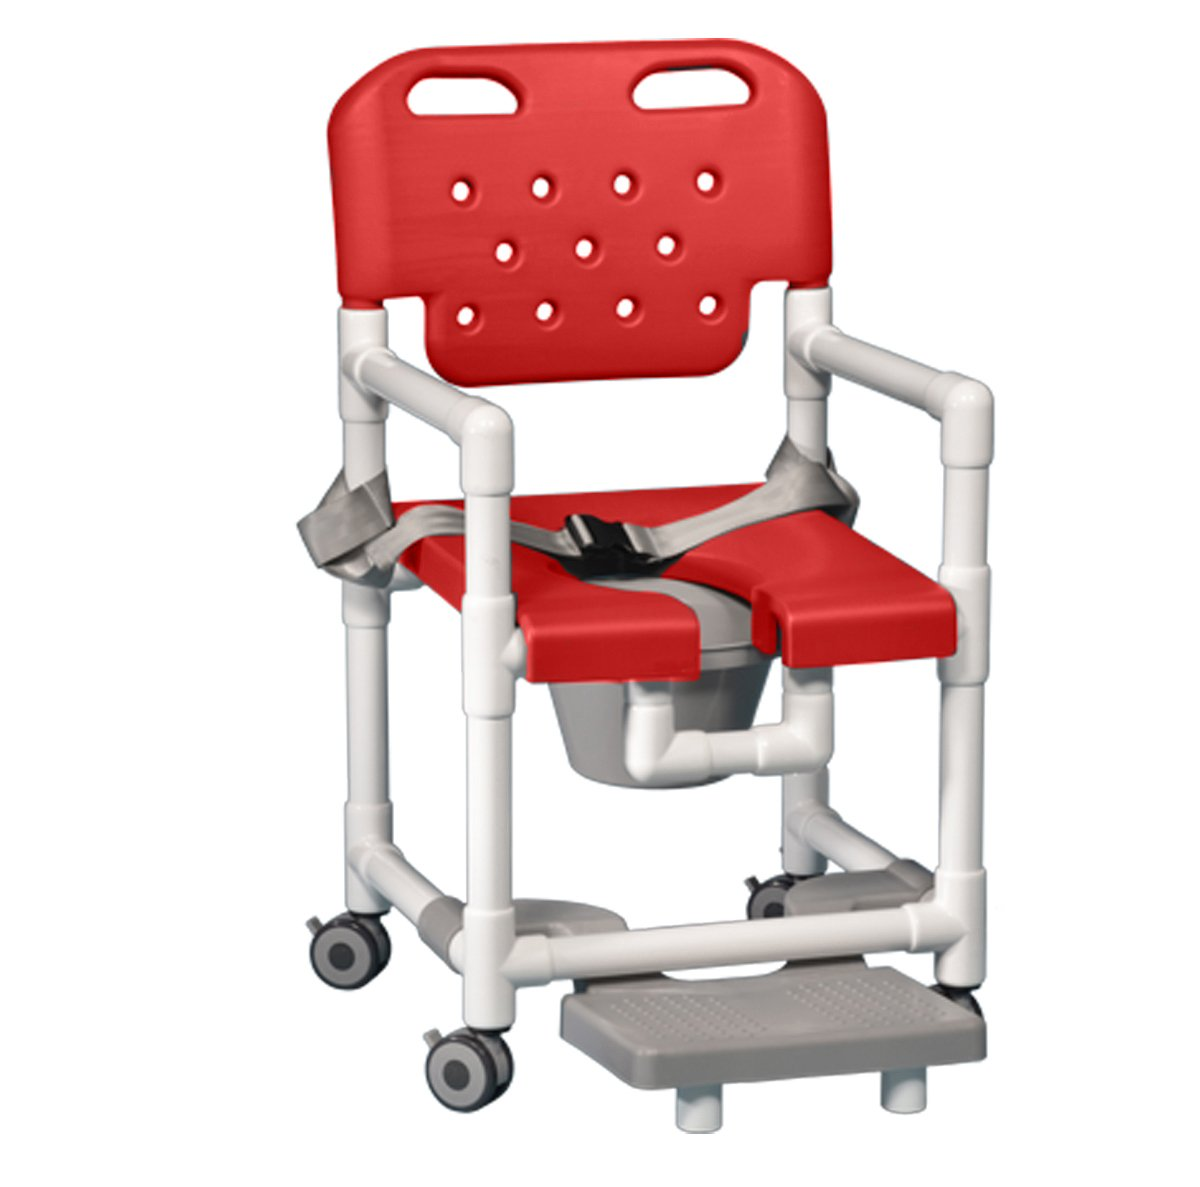 Innovative Products Unlimited ELT817 P FRSB R Elite Shower Commode with Footrest and Seat Belt, 21 lb